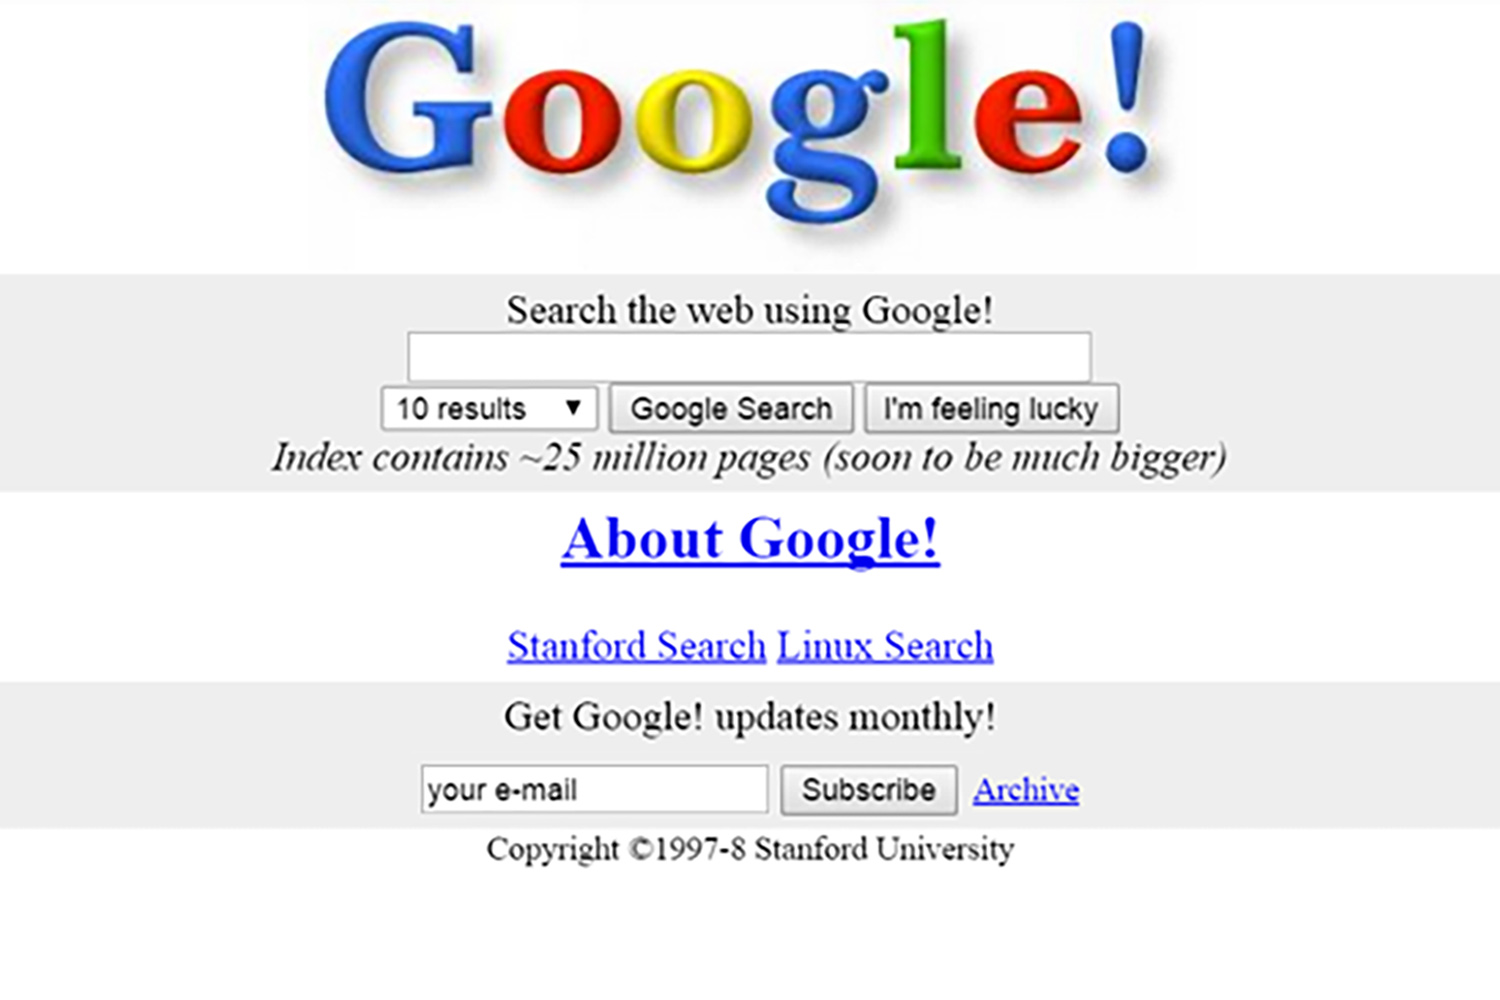 The new version is easier on the eyes than this classic Google look from the late '90s